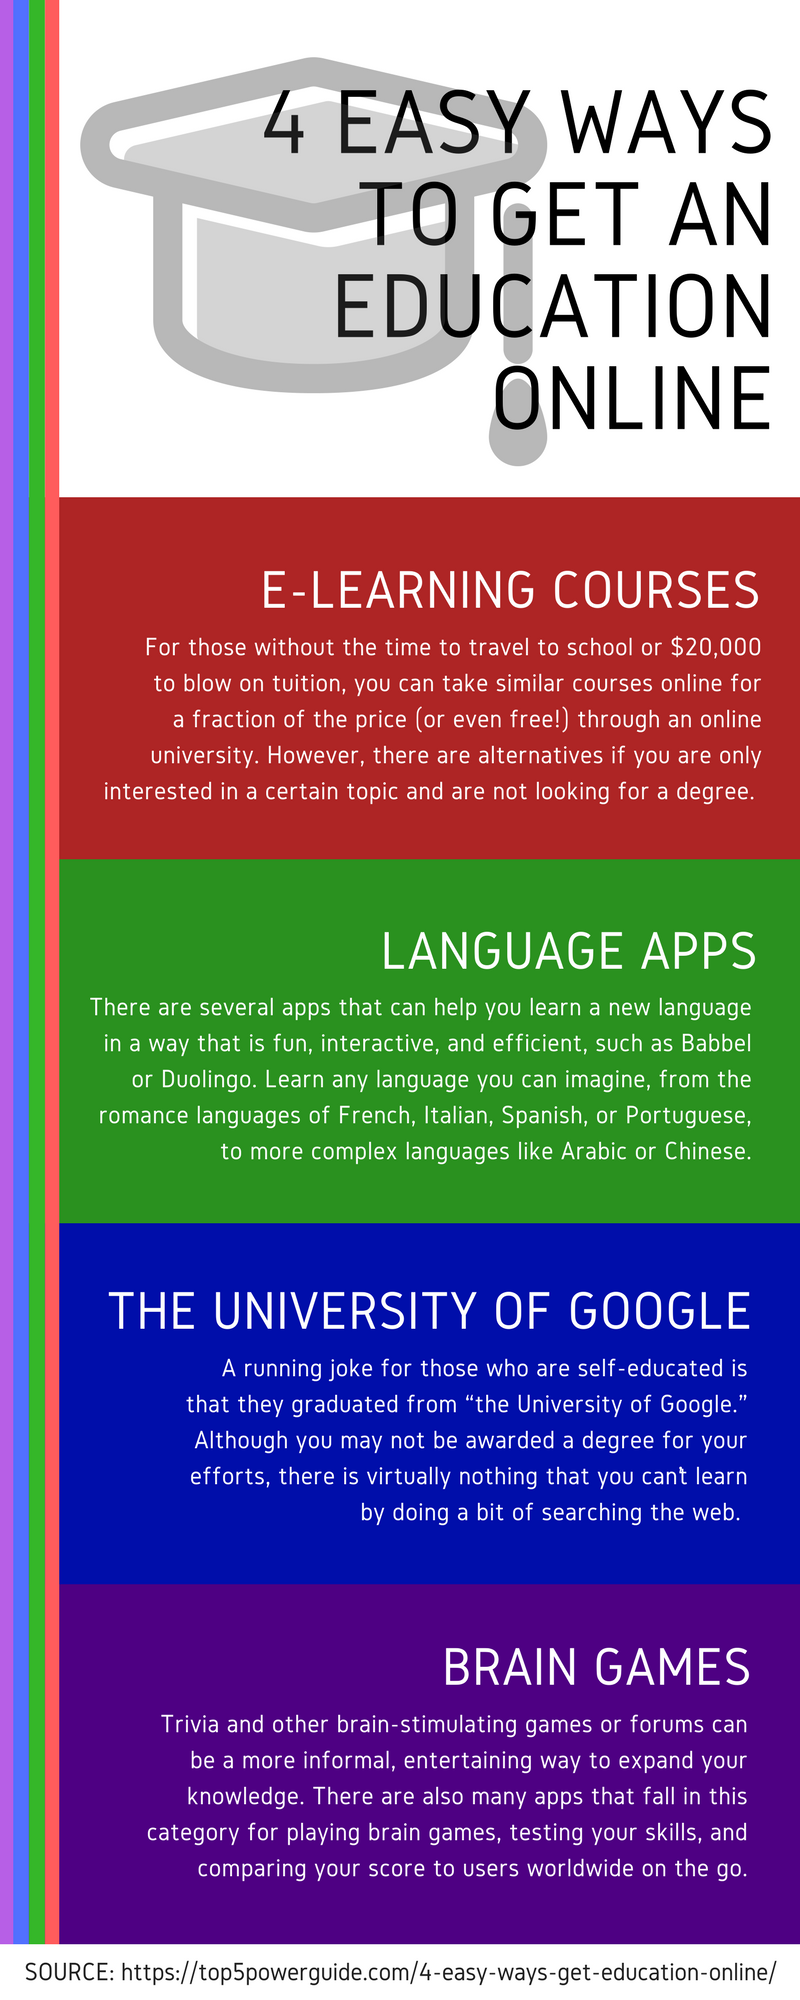 4 EASY WAYS TO GET AN EDUCATION ONLINE INFOGRAPHIC